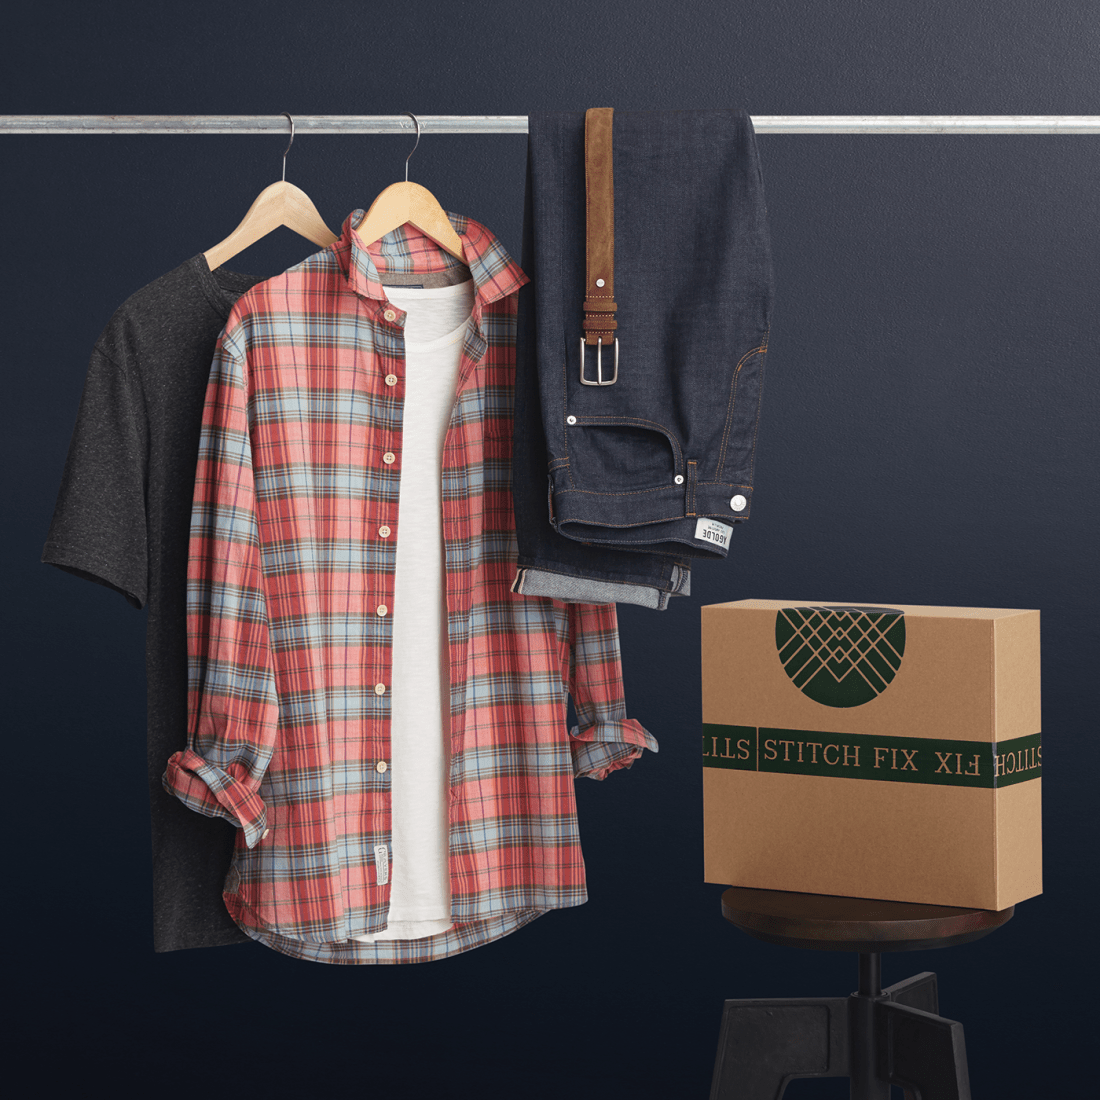 Do you still need a gift for dad but you're stumped for ideas? Check out these 8 Awesome Fathers Day Gifts For Dad That Aren't a Tie. From Music loves to Beer loves, we have something for every dad this Fathers Day.